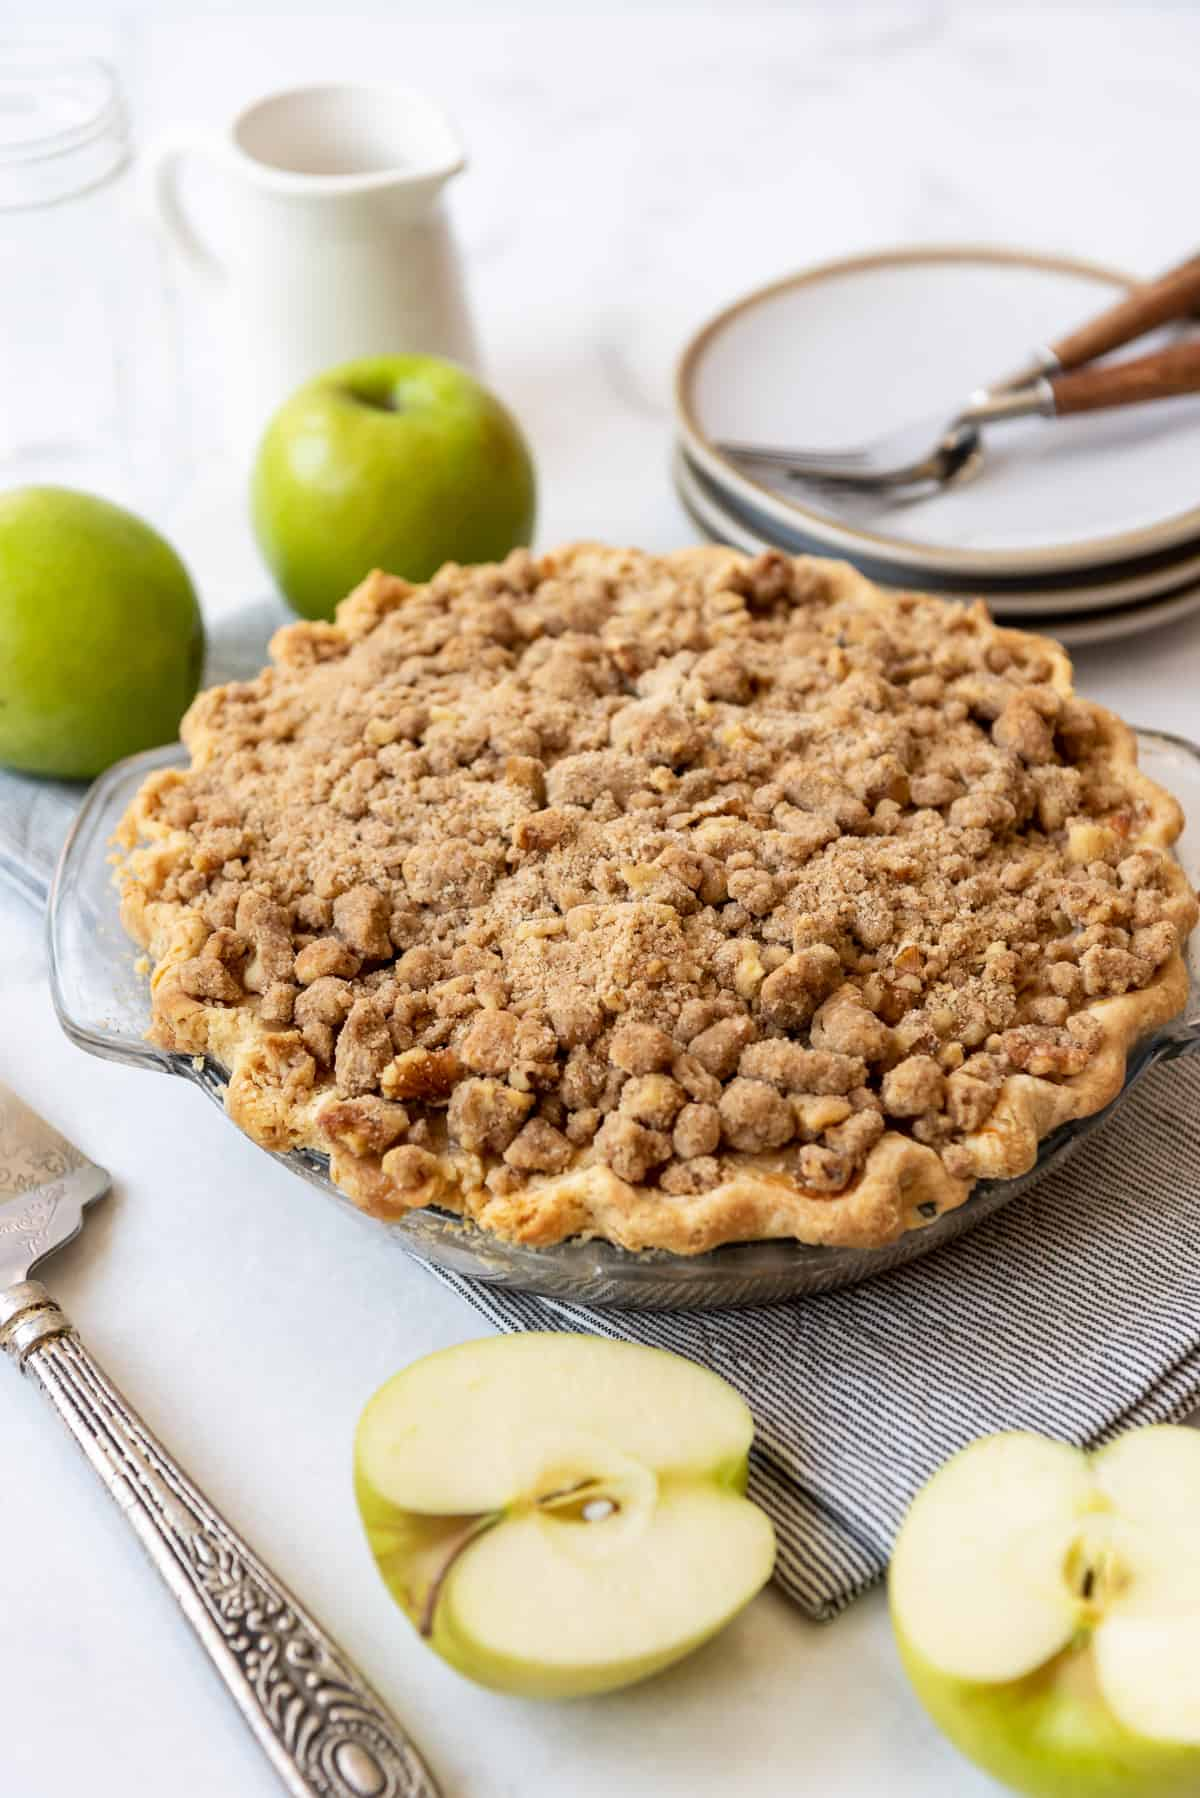 A sour cream apple pie topped with streusel next to Granny Smith apples.